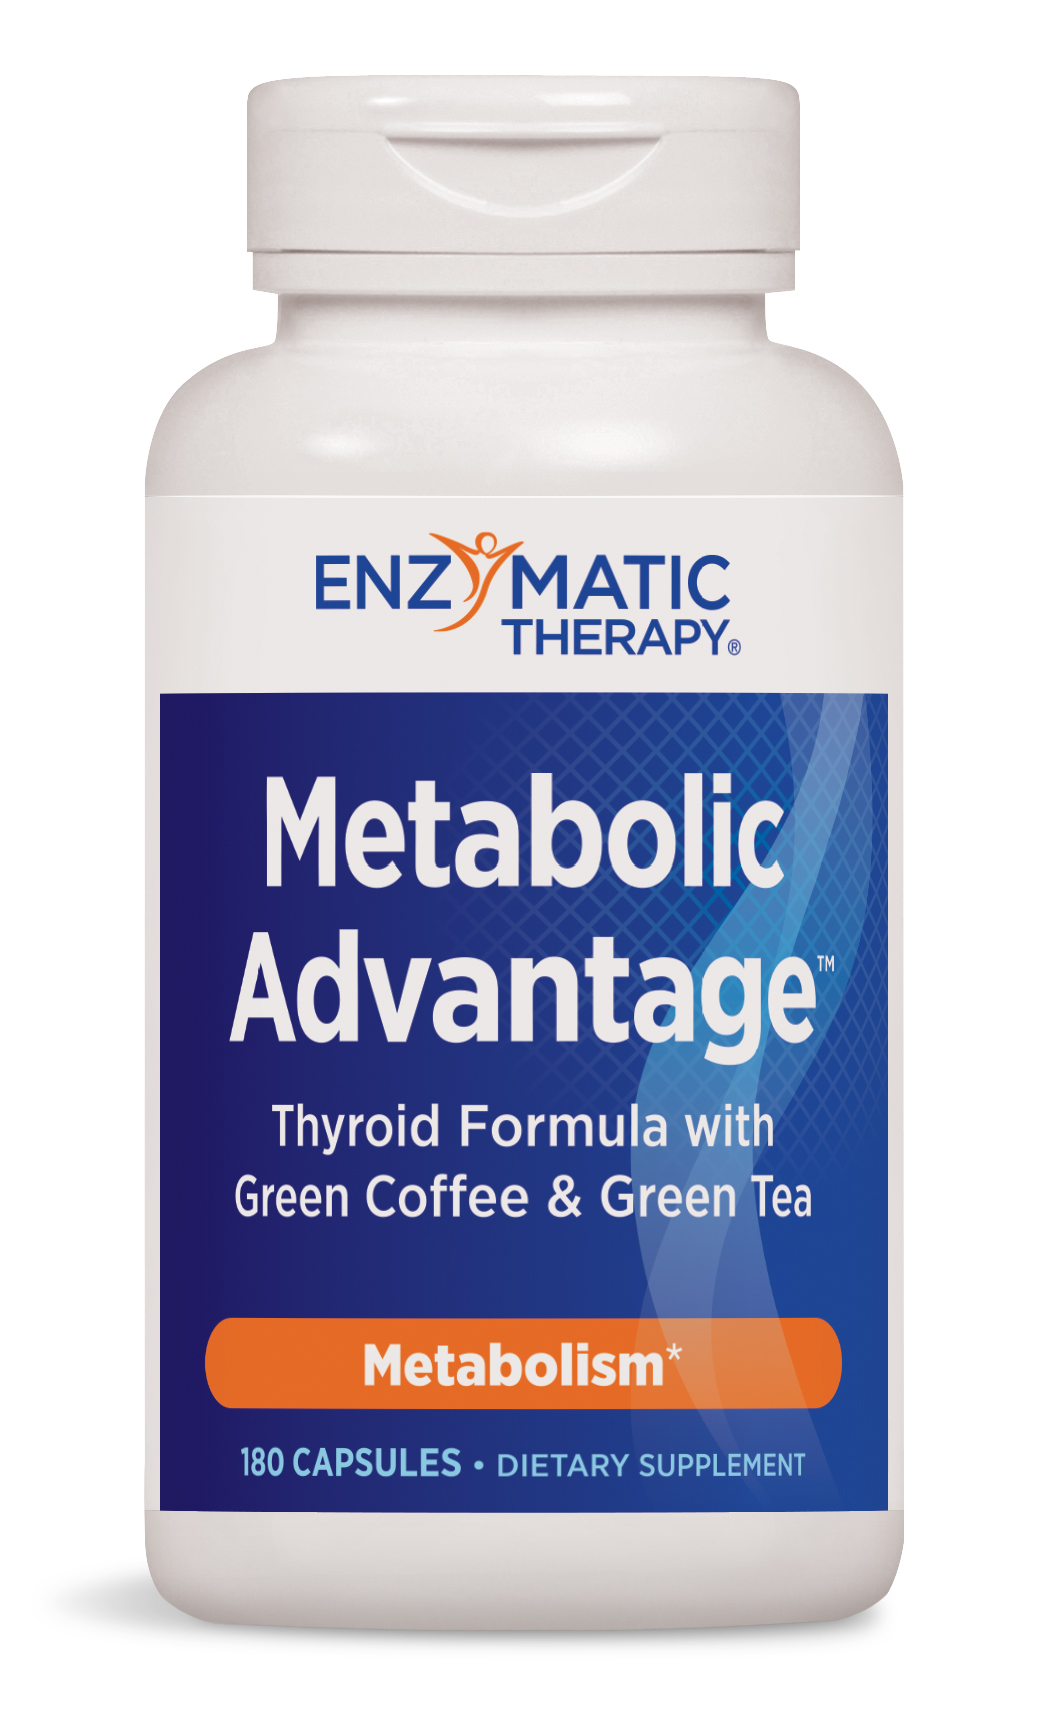 Metabolic Advantage Thyroid Formula 180 caps by Enzymatic Therapy (EXPIRES 2/18)